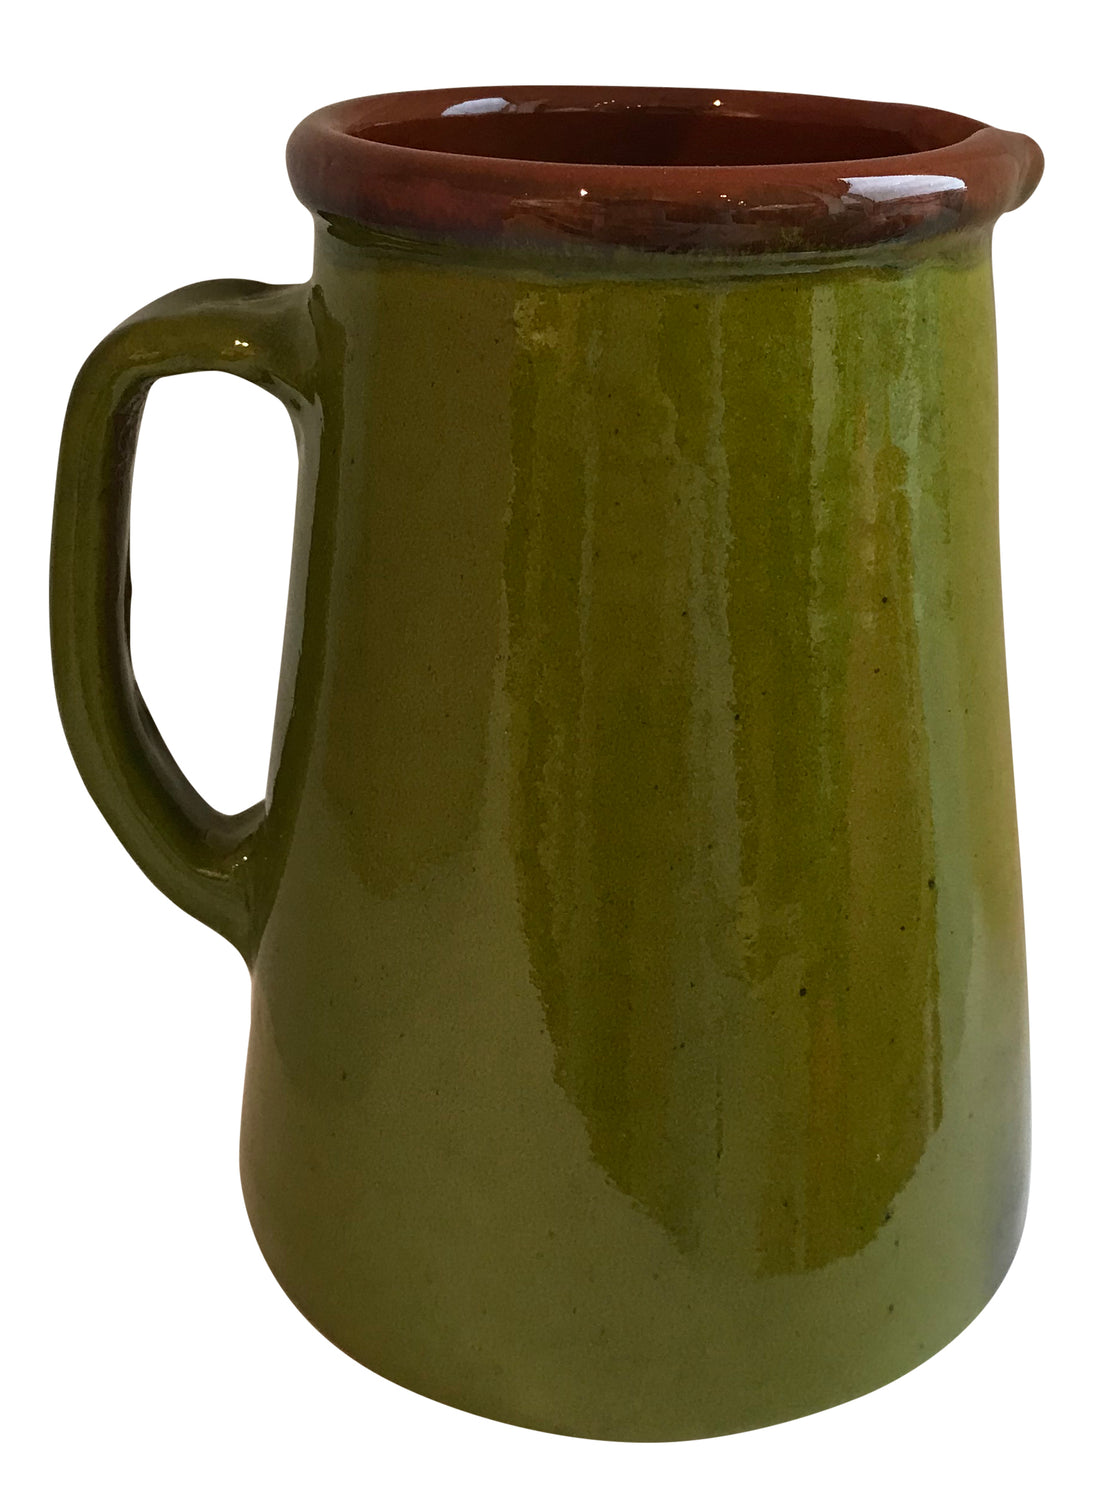 From the region of Catalonia, Spain comes this beautiful, authentic Pistachio Spanish Jug